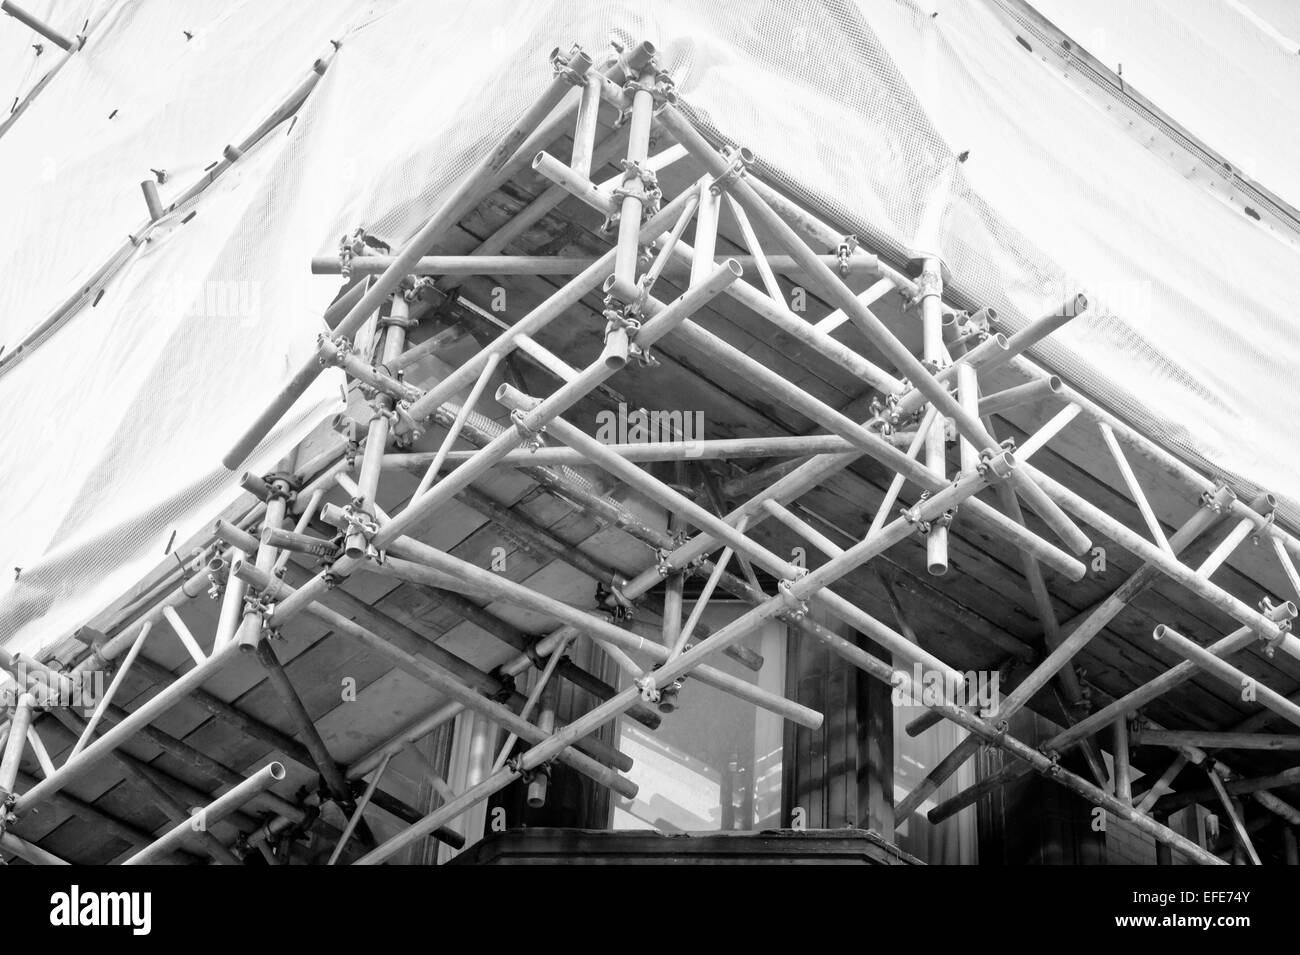 Details of scaffolding bars on a building - Stock Image